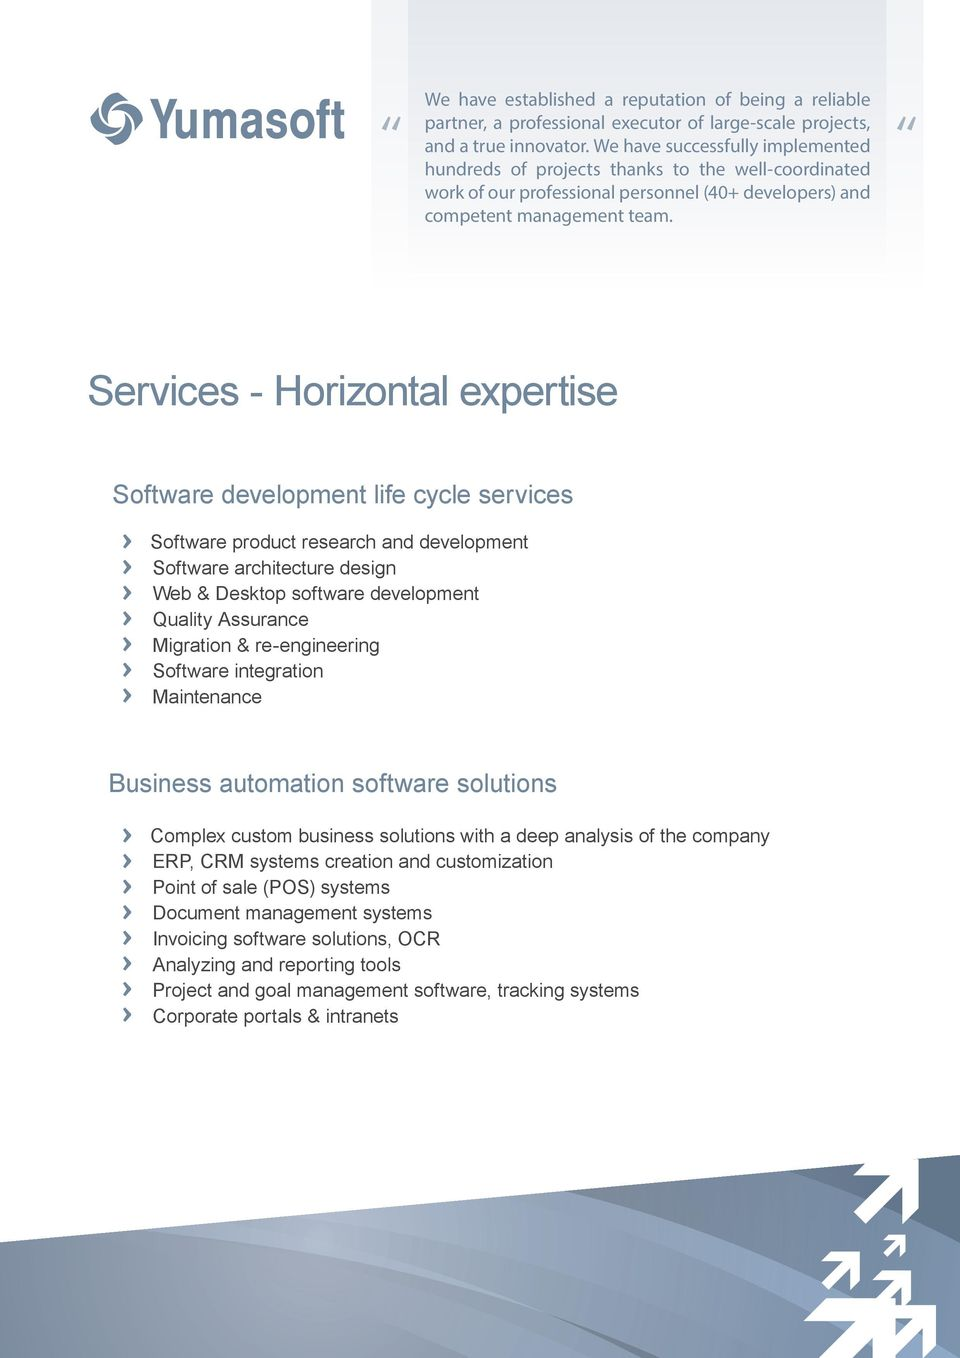 Services - Horizontal expertise Software development life cycle services Software product research and development Software architecture design Web & Desktop software development Quality Assurance